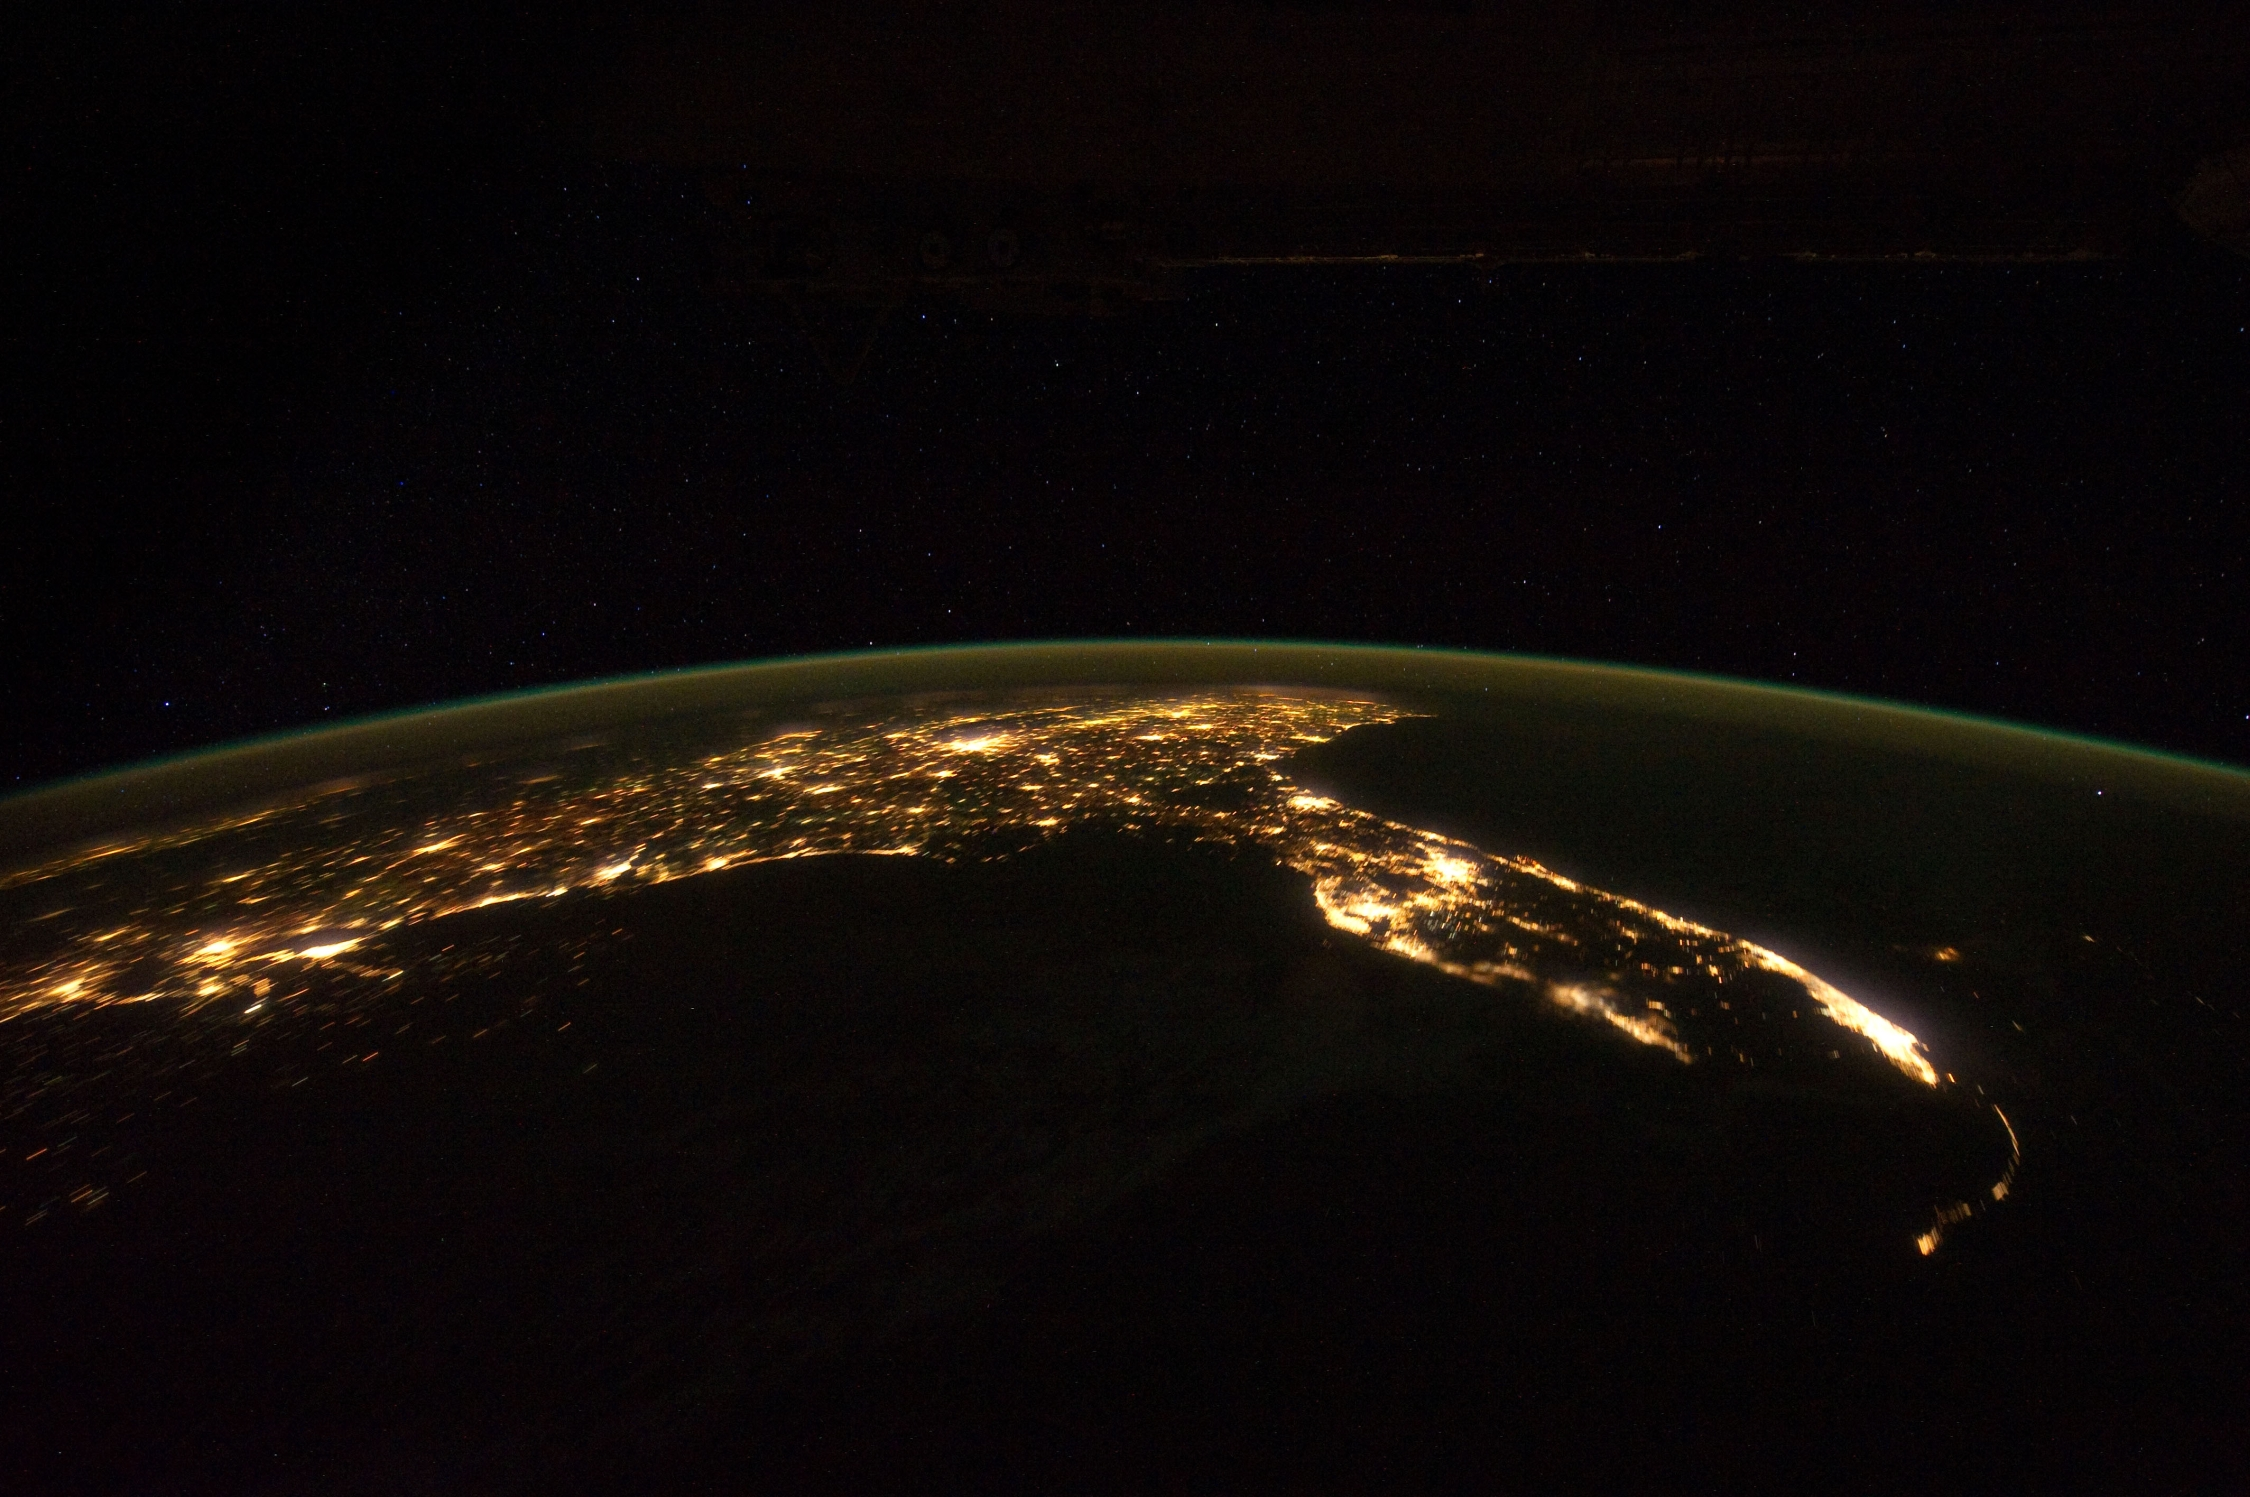 Fagualo octubre 2014 salmo 33 10 11 for Space station florida